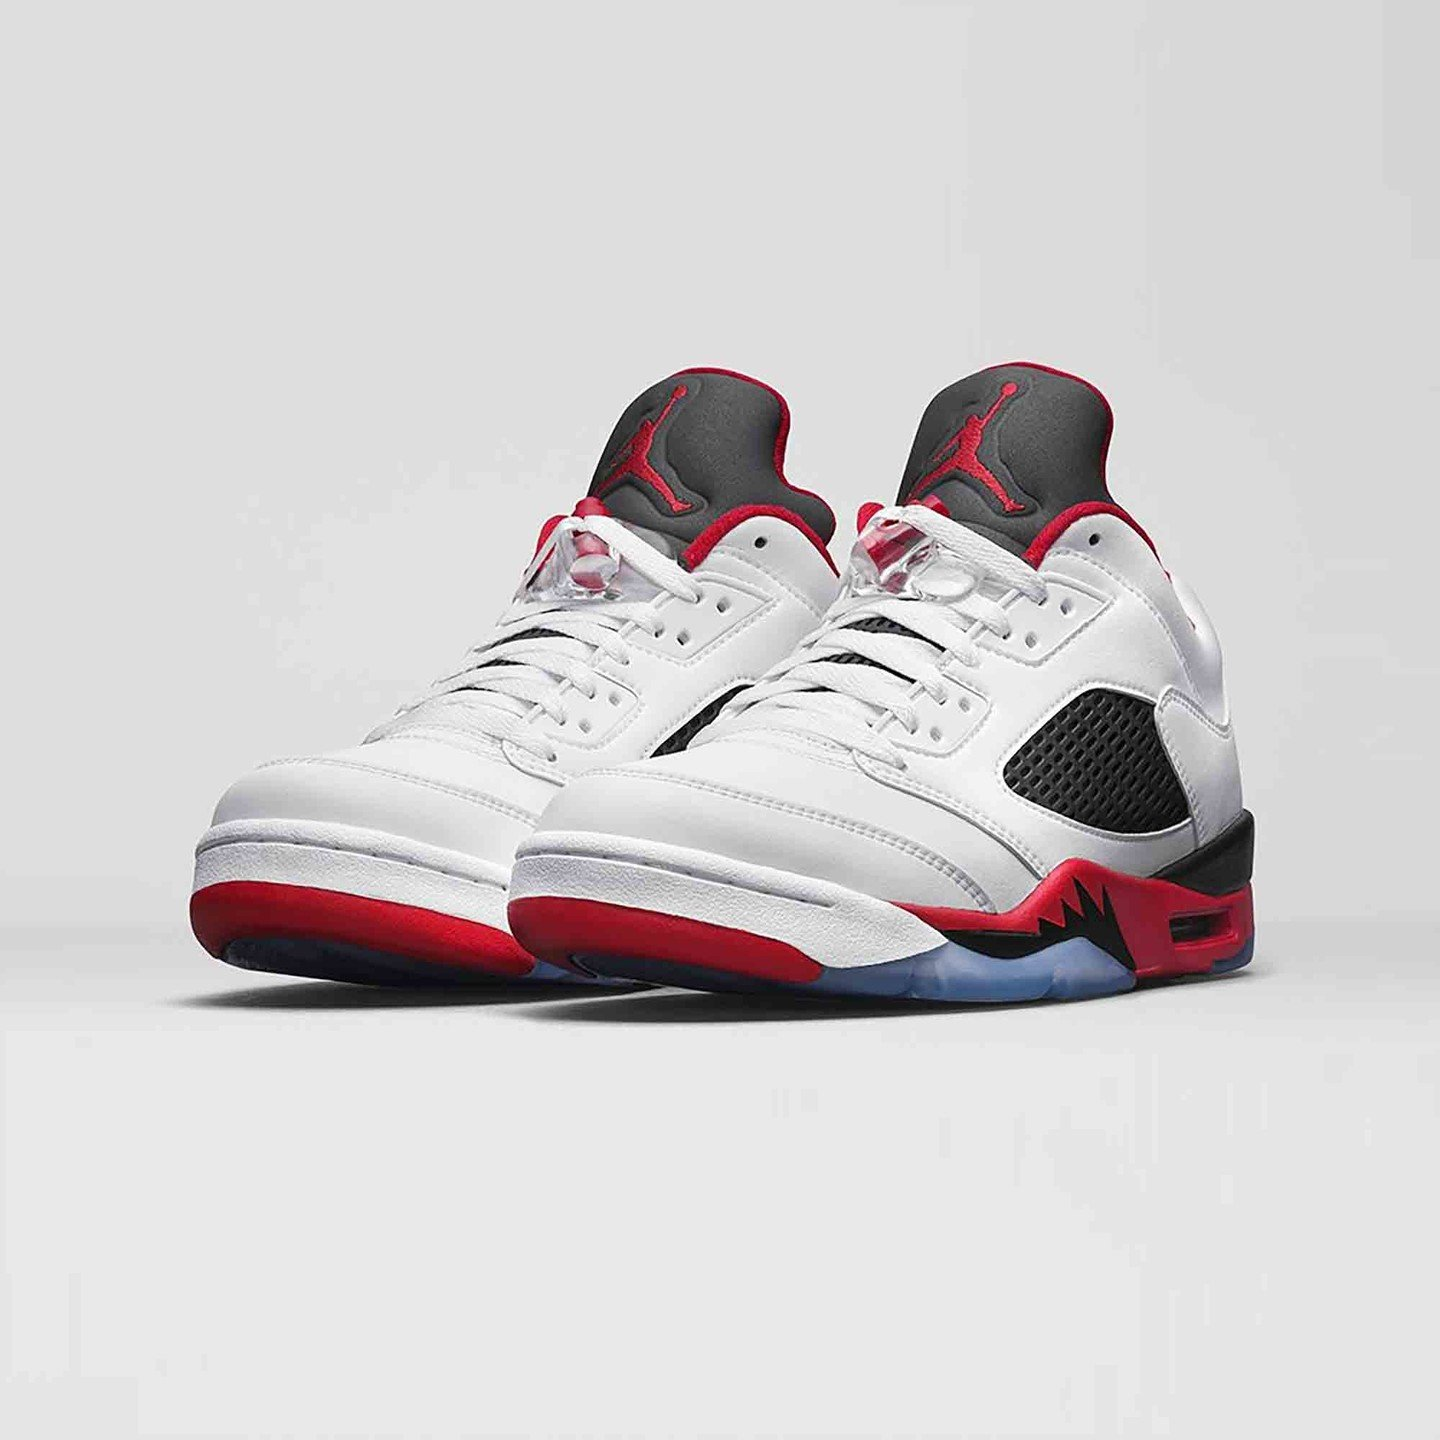 Jordan Air Jordan 5 Low Retro 'Fire Red' White / Fire Red / Black 819171-101-43